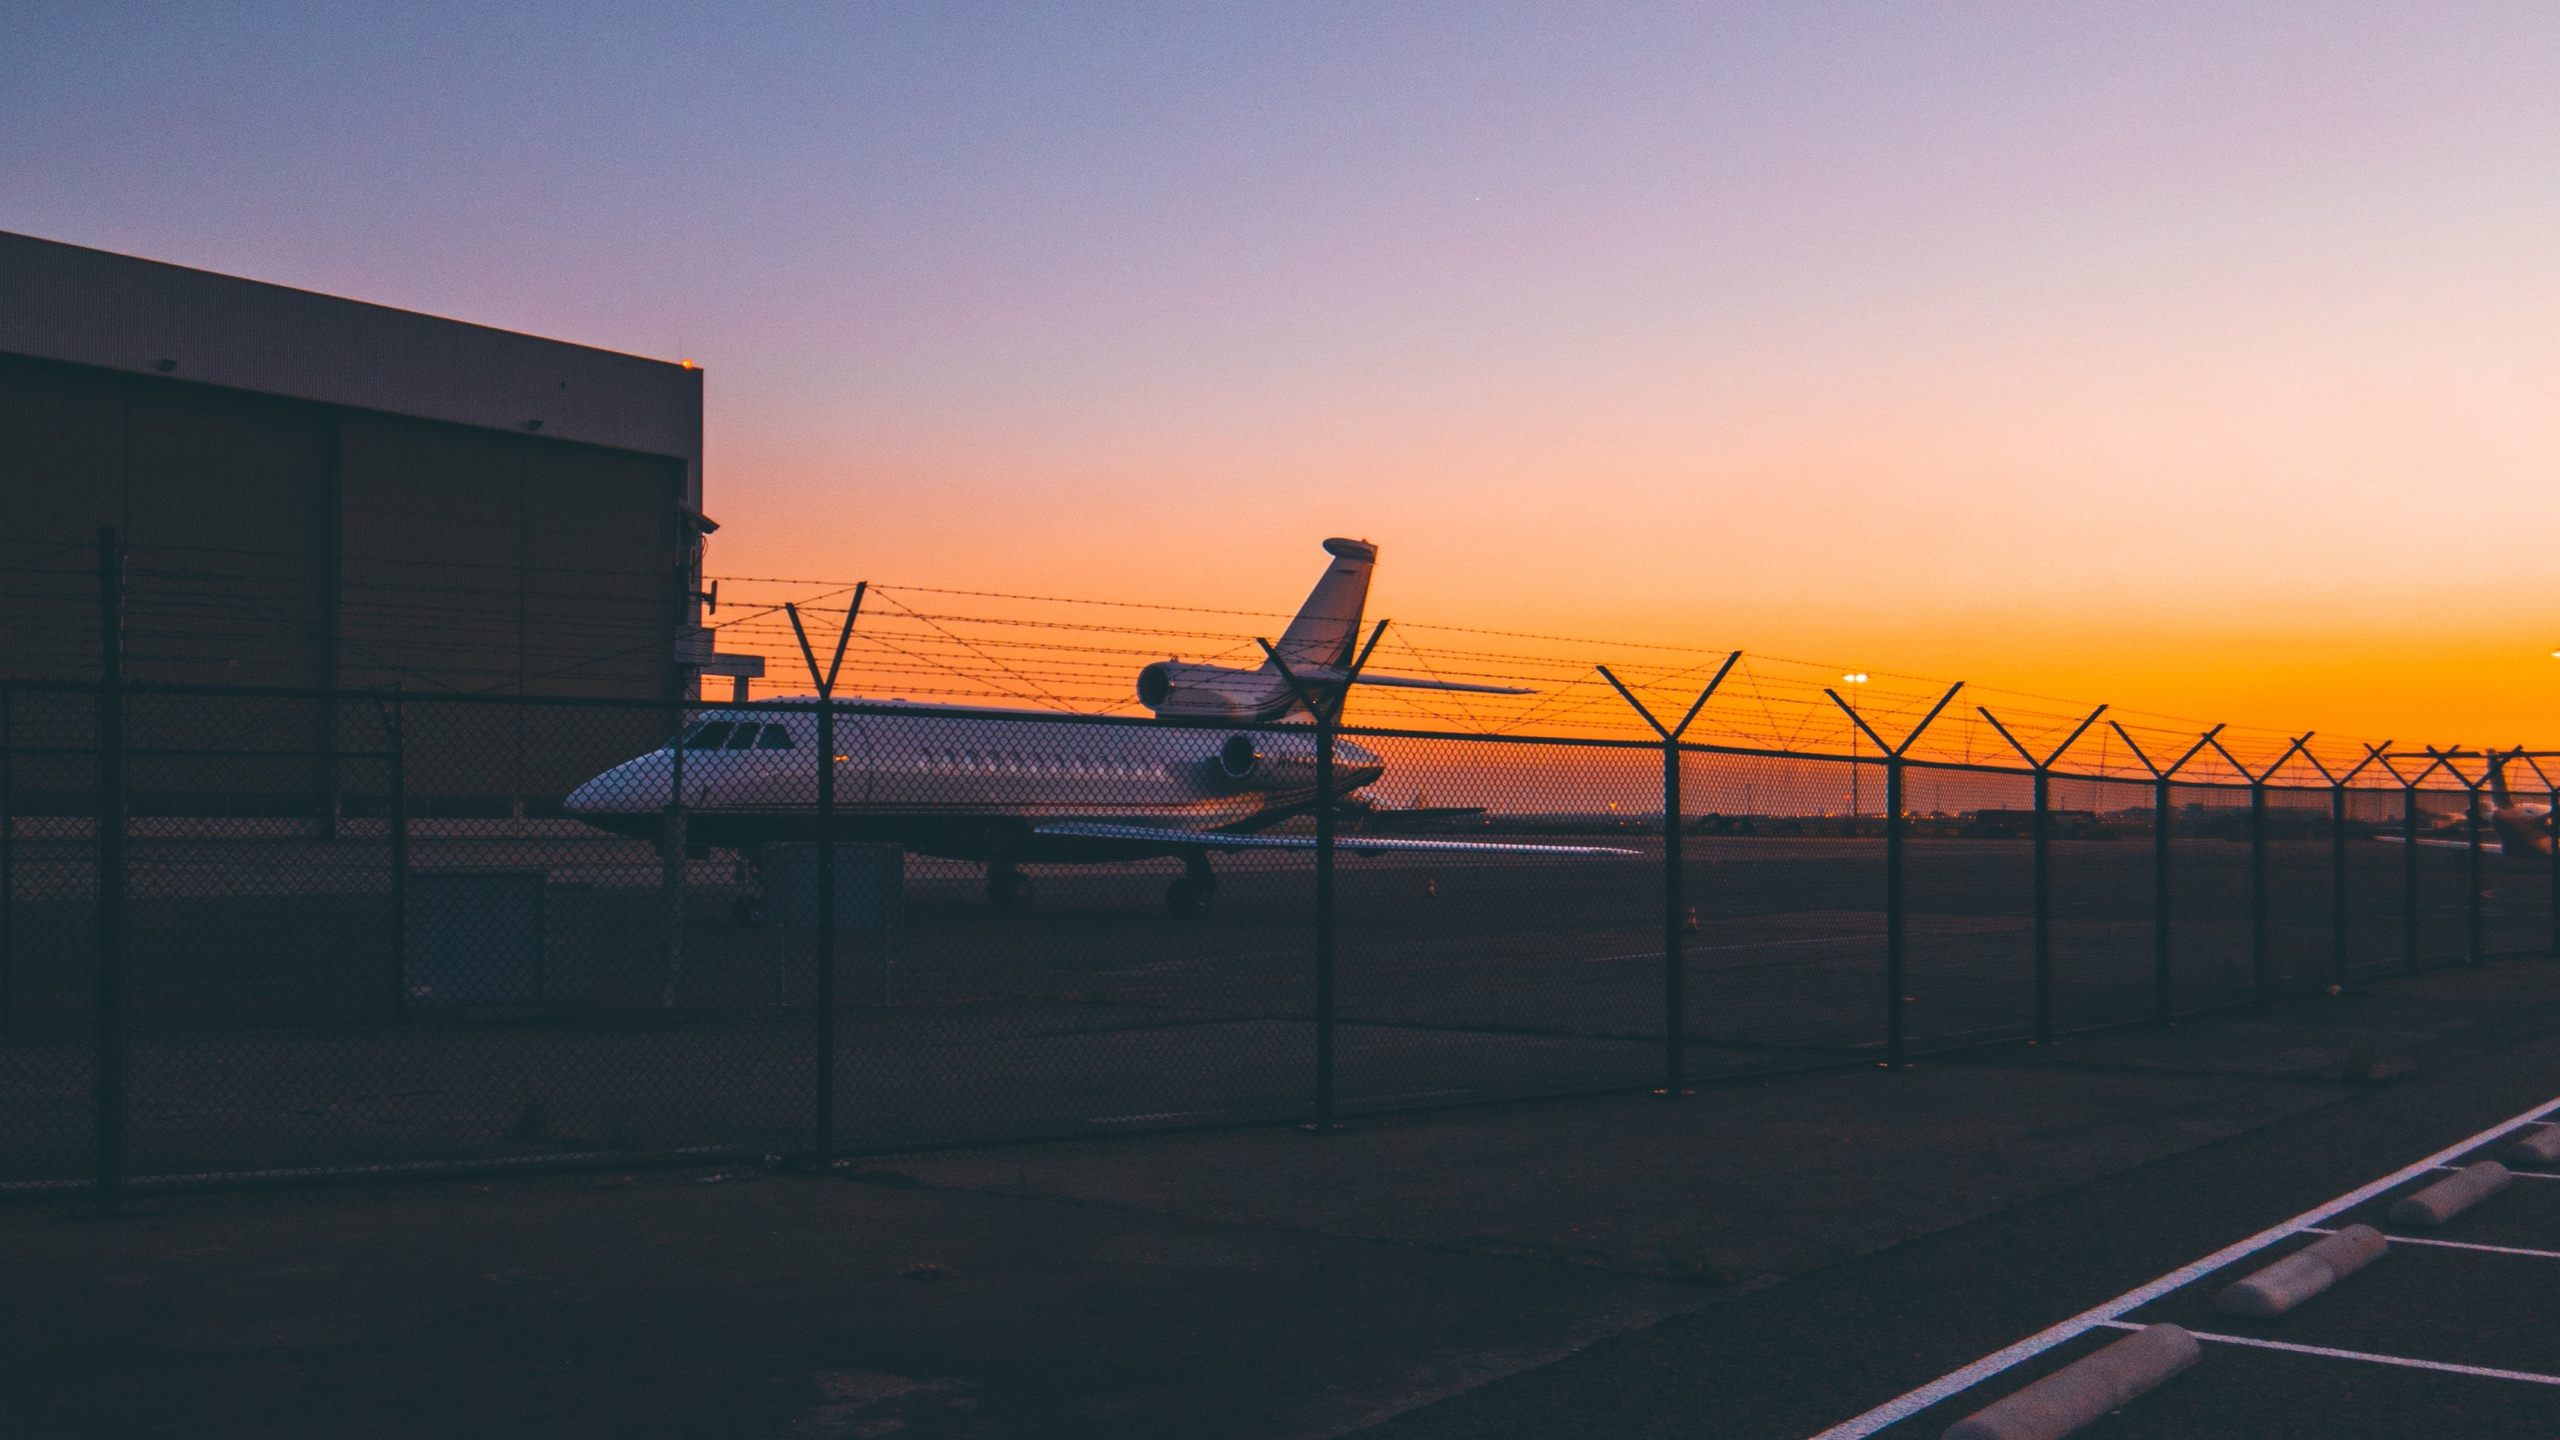 airport airplane hd background wallpaper 70878